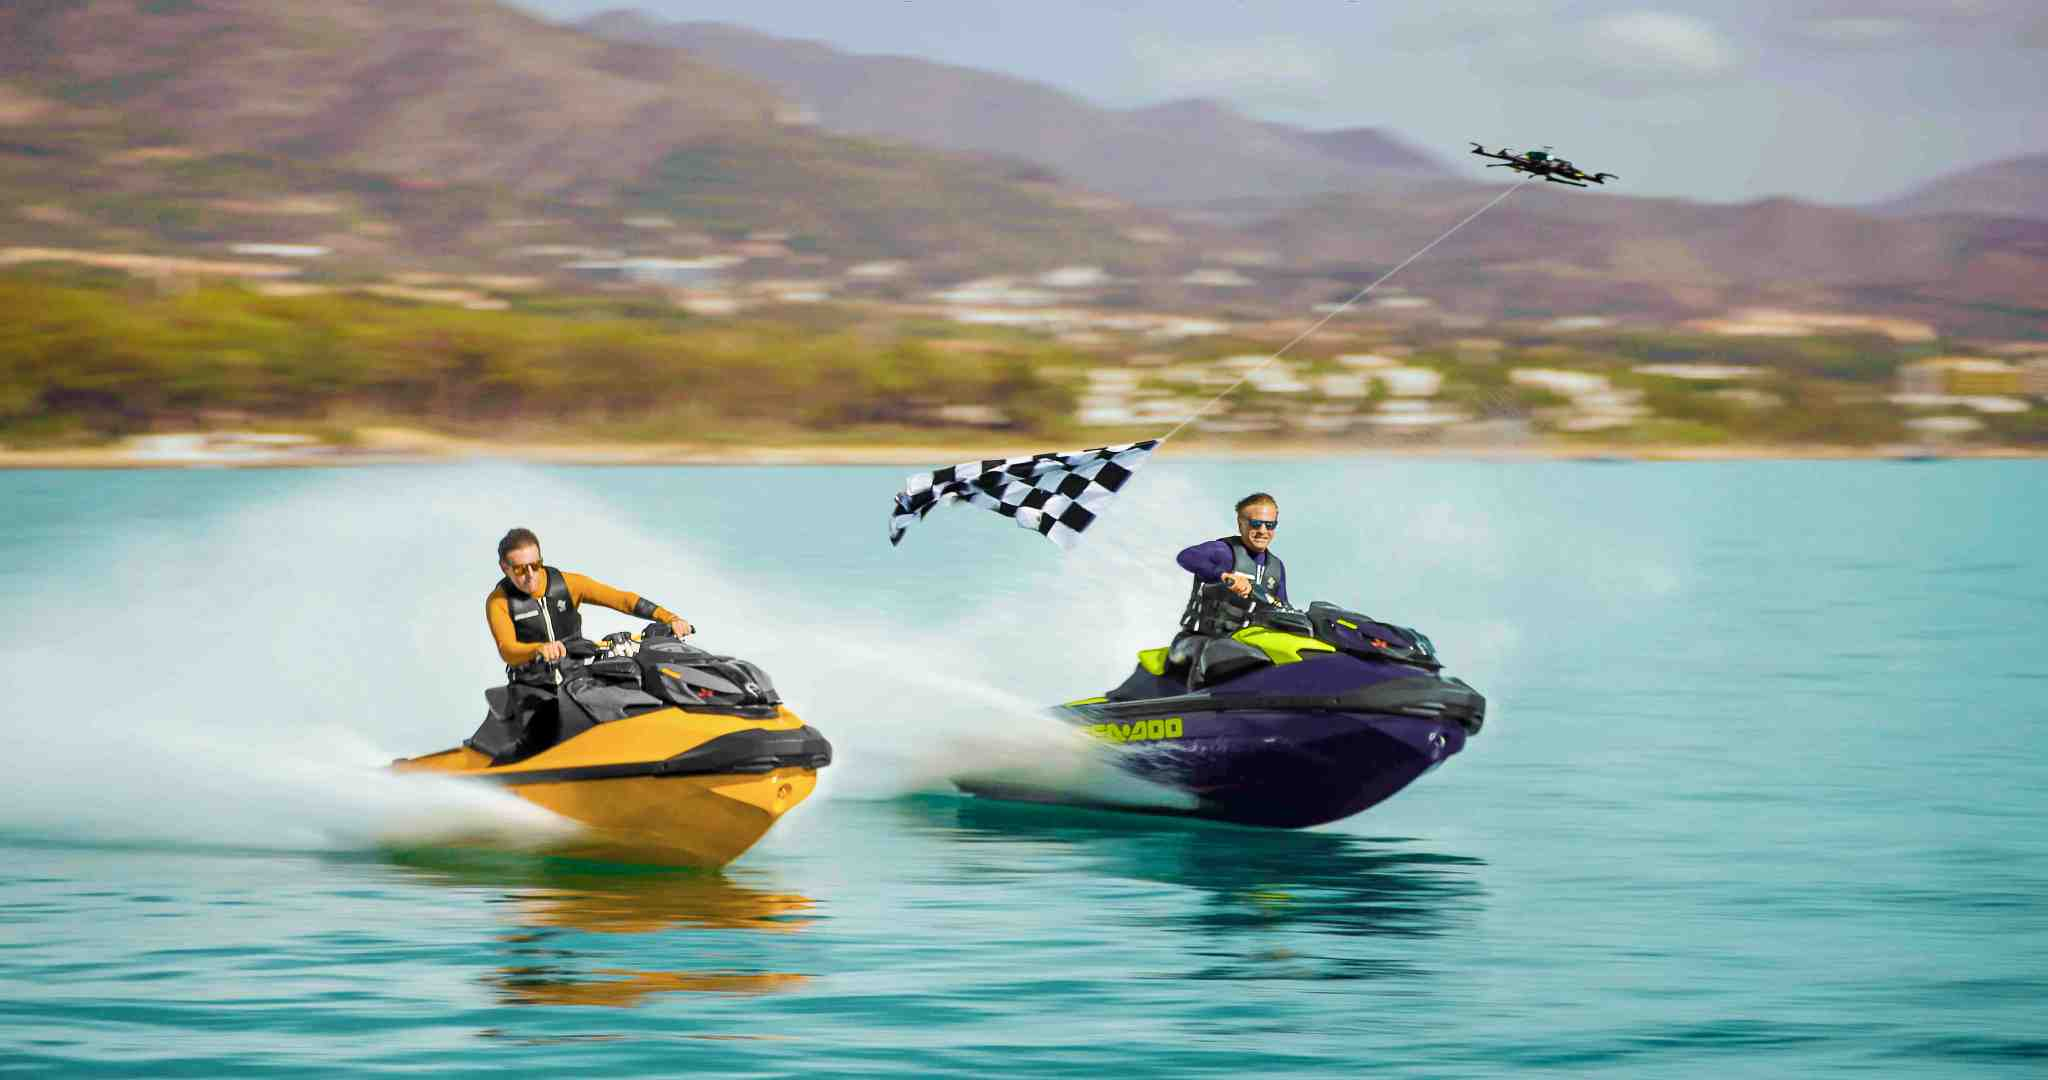 SEA-DOO-RXPX-24-11-2020-SELECTS-00-00-26-00